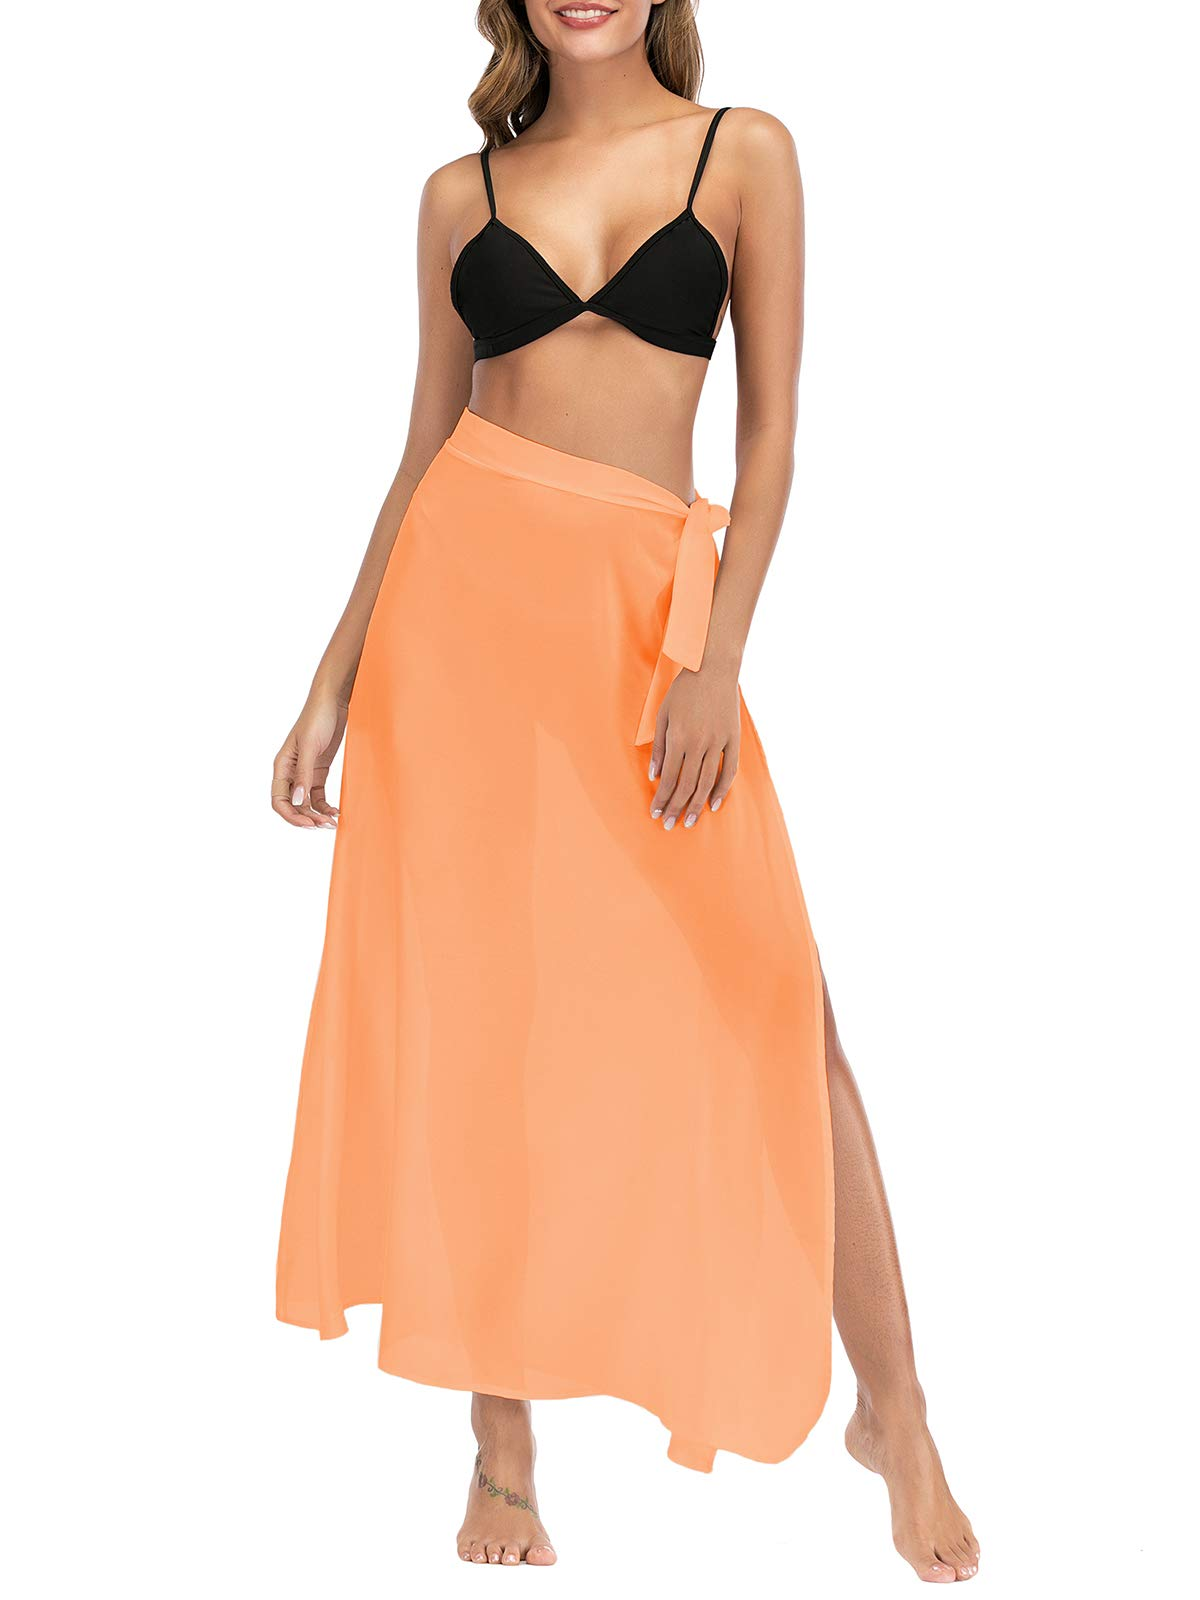 Century Star Swimsuit Cover Ups for Women Sarong Beach Wrap Skirt Sexy Bathing Suit Cover-ups Bikini Cover Ups